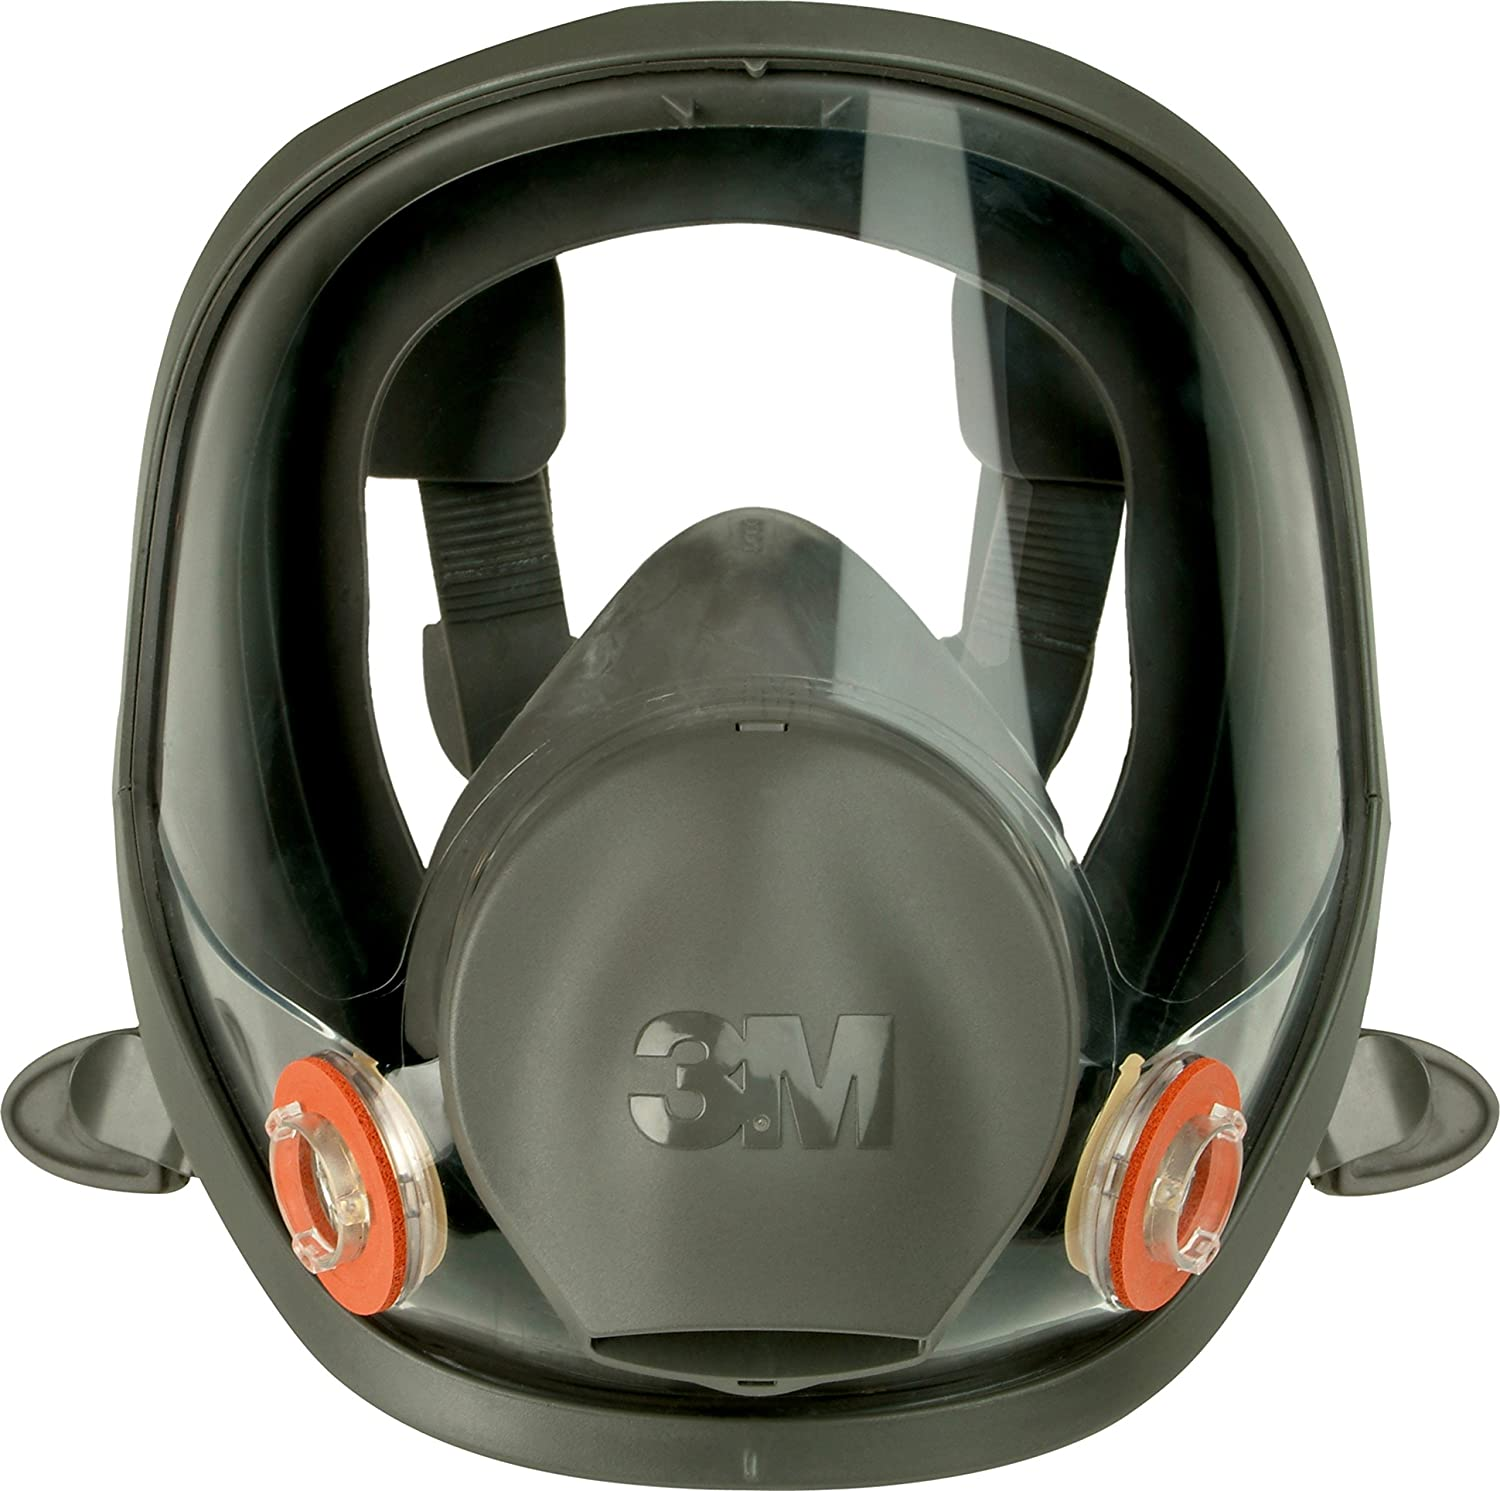 3M Reusable Full Face Mask, Small, 6700, EN safety certified 7100015974